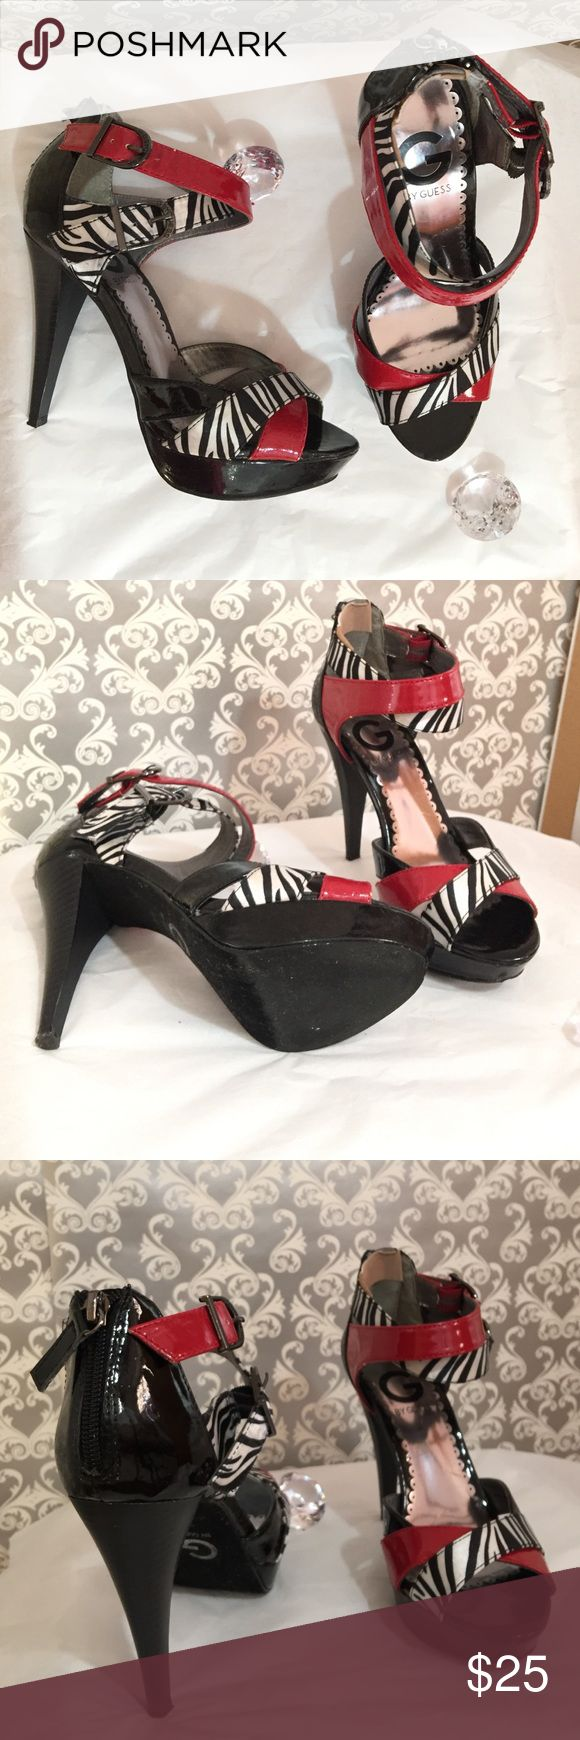 Guess zebra print ankle strap heels Lightly worn adjustable straps heel size 4 inches in length platform size 1 inch in length G by Guess Shoes Heels